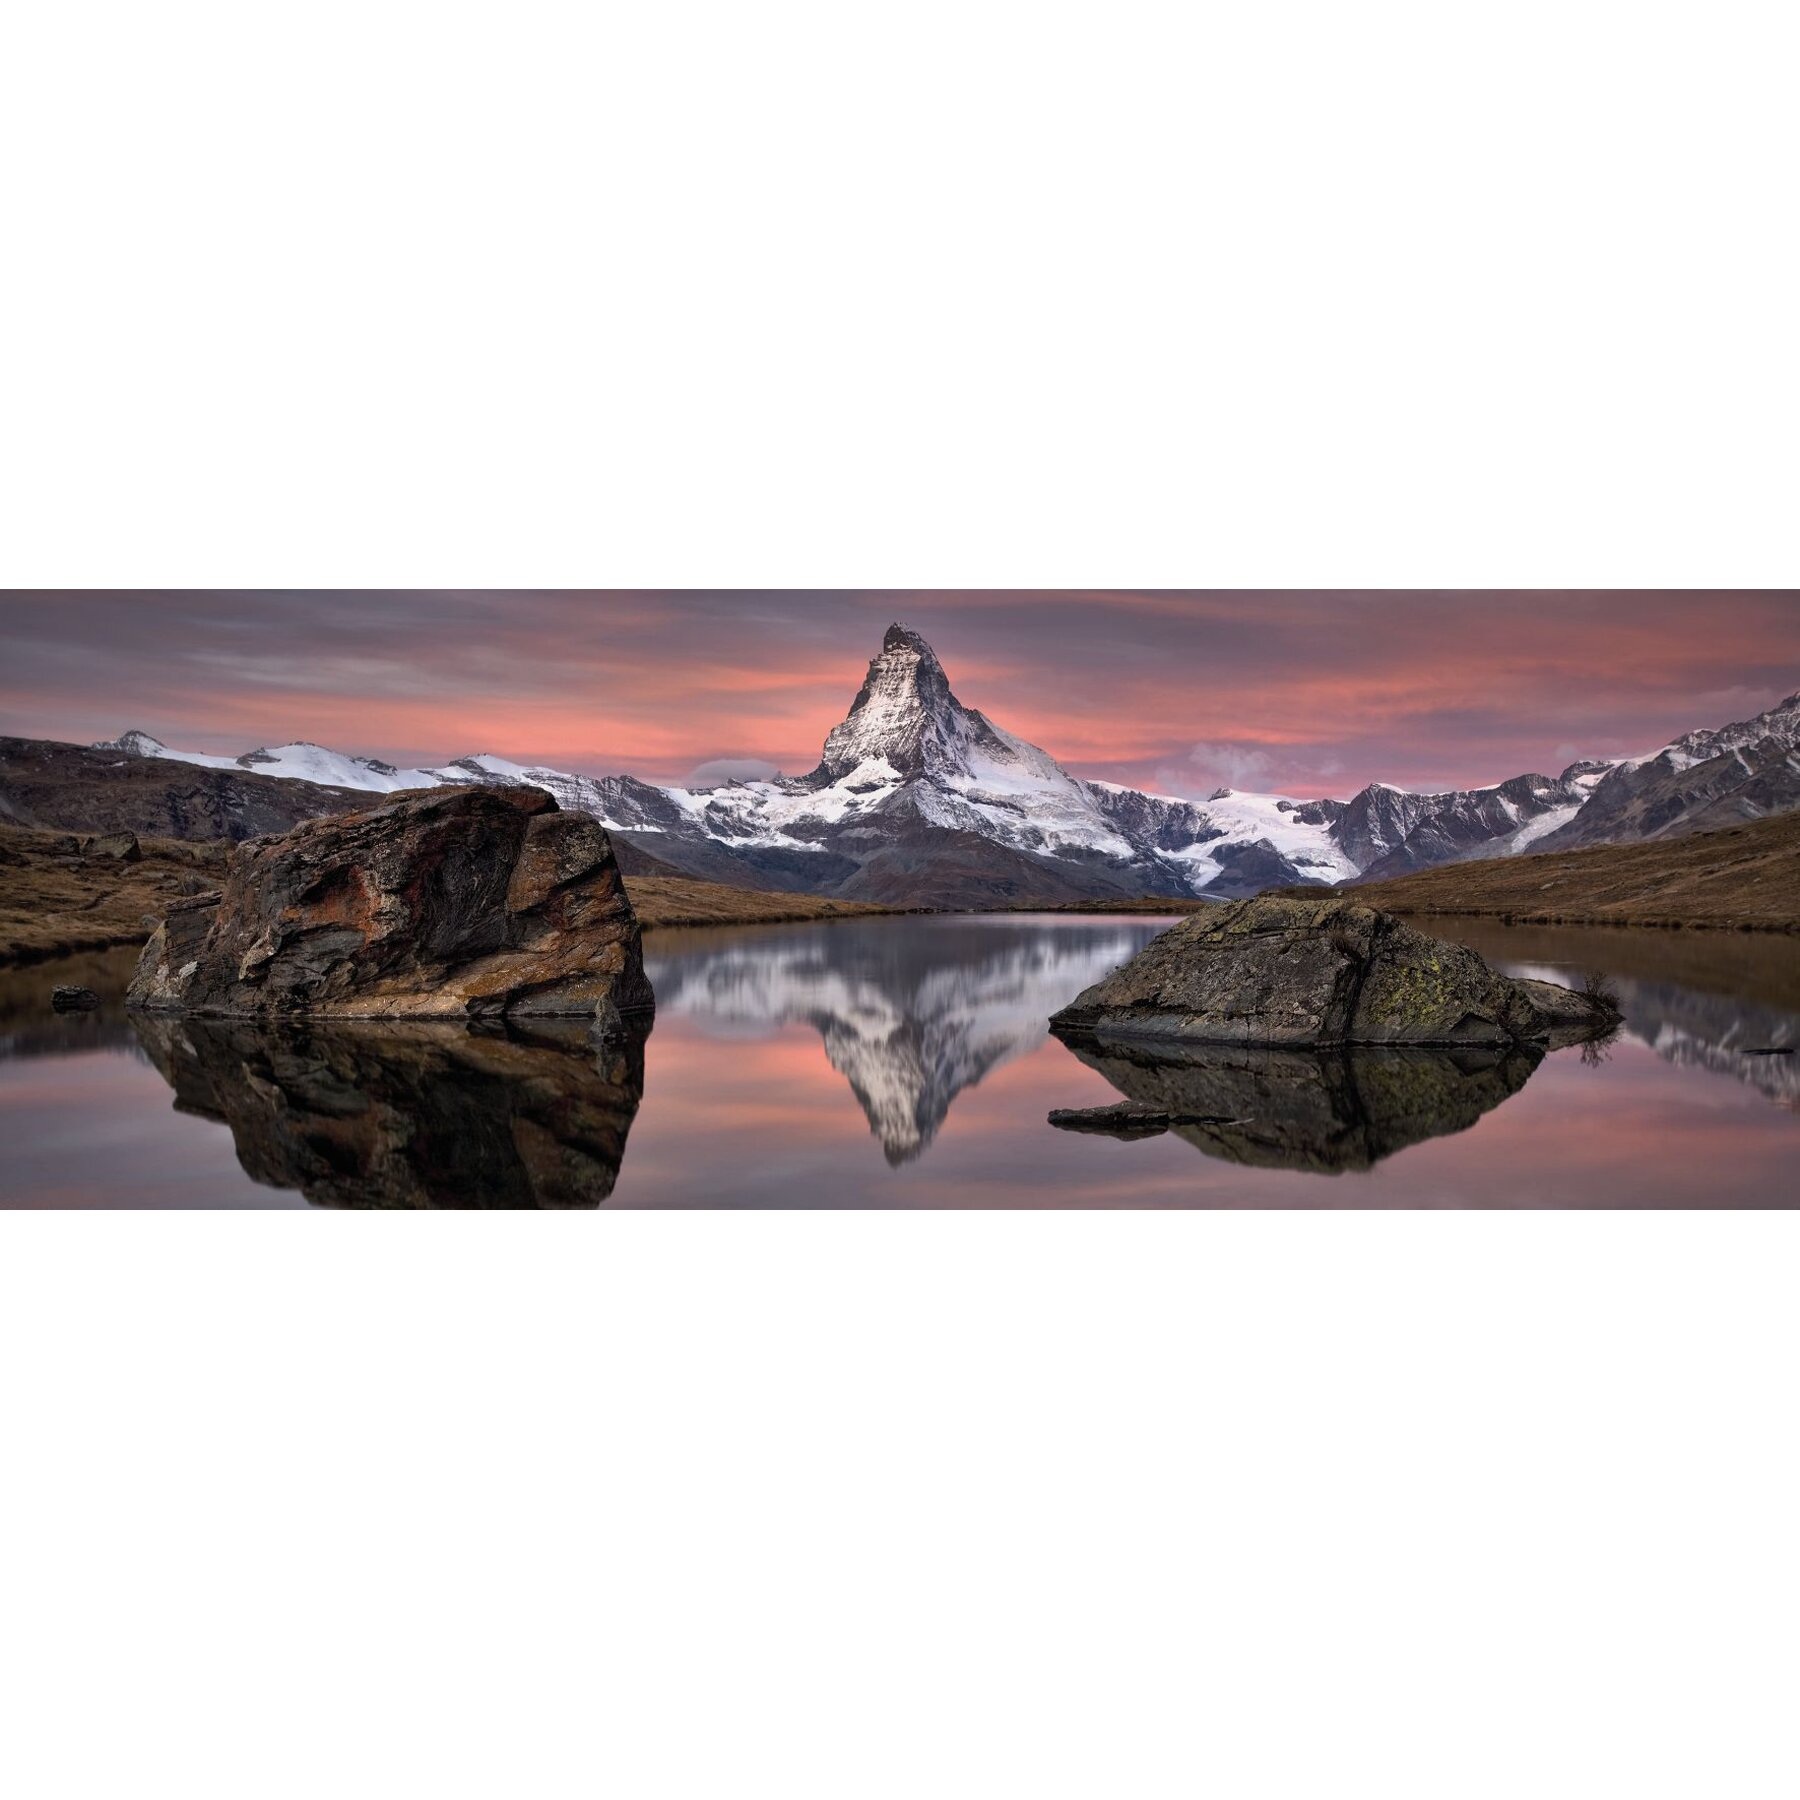 Brewster home fashions komar matterhorn wall mural wayfair for Brewster home fashions komar wall mural